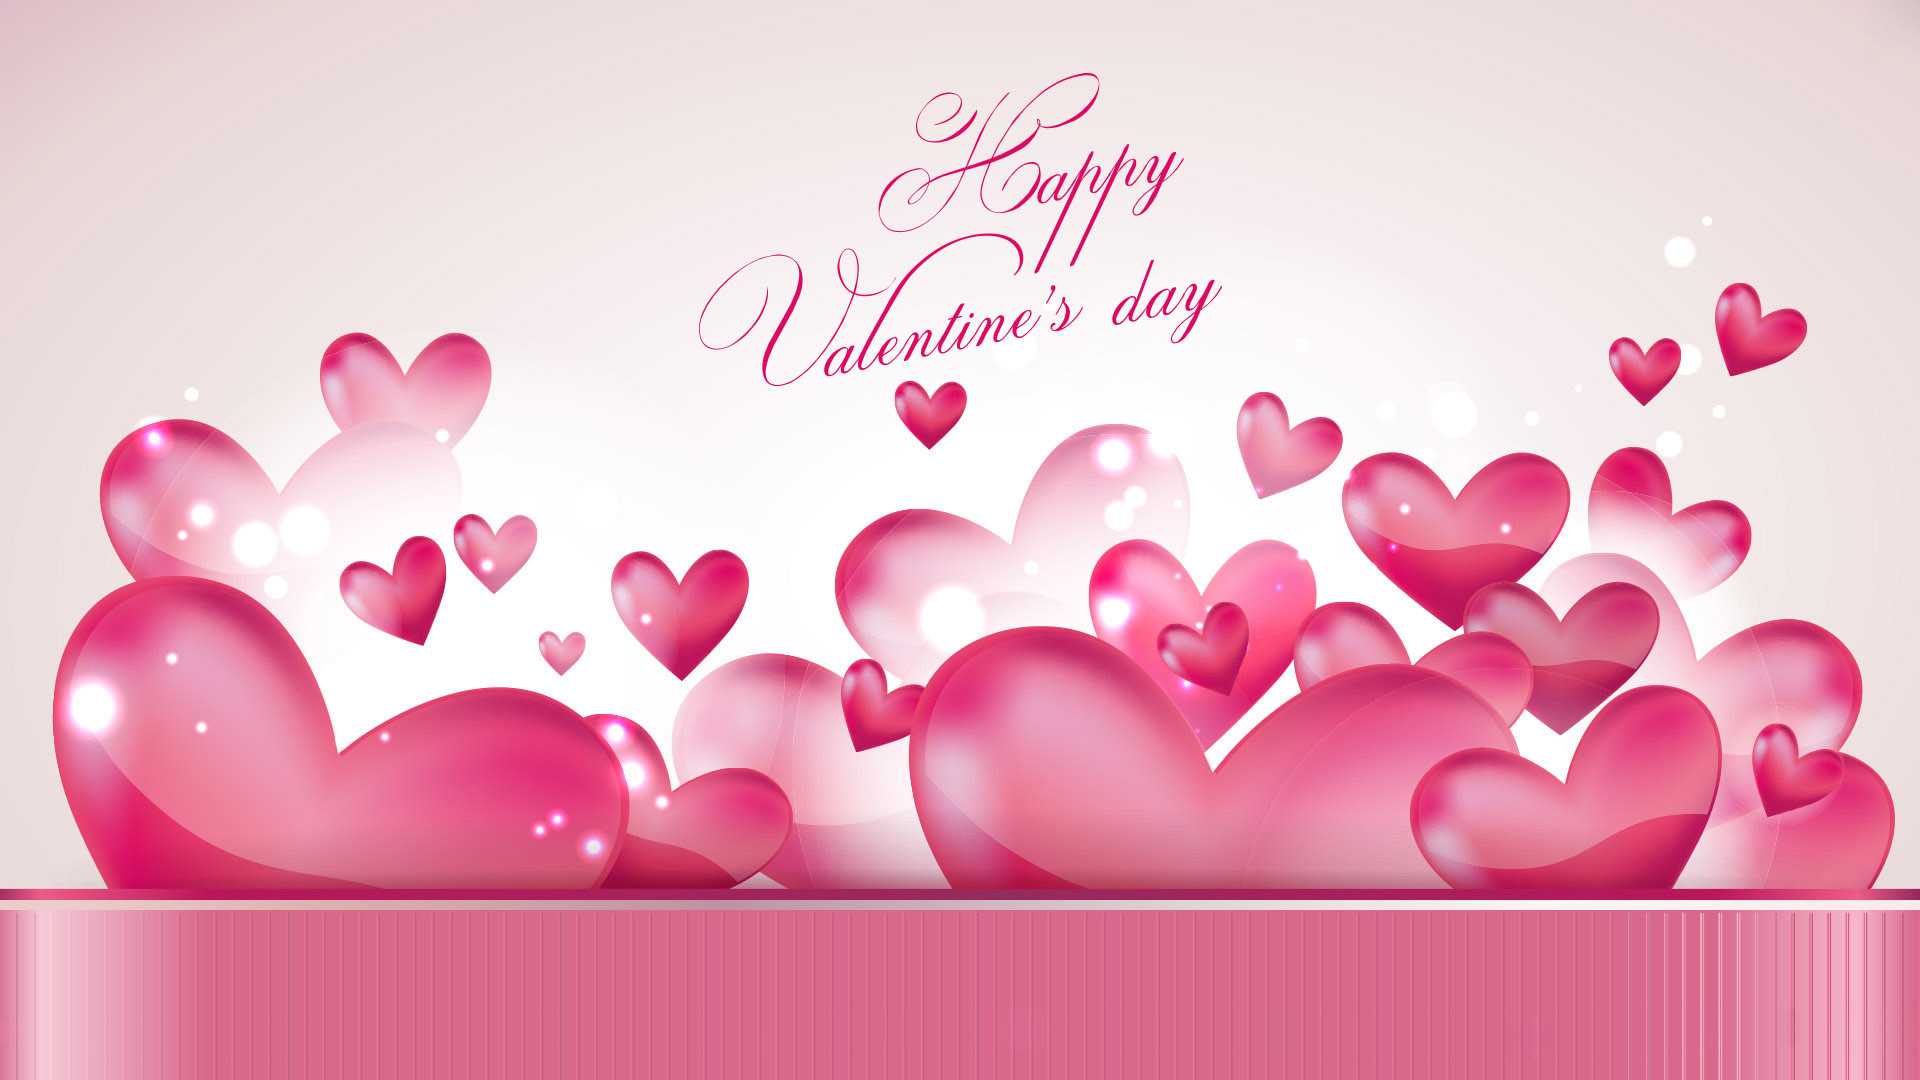 Happy Valentine's day 2016 Messages | Happy Valentines Day 2016 .